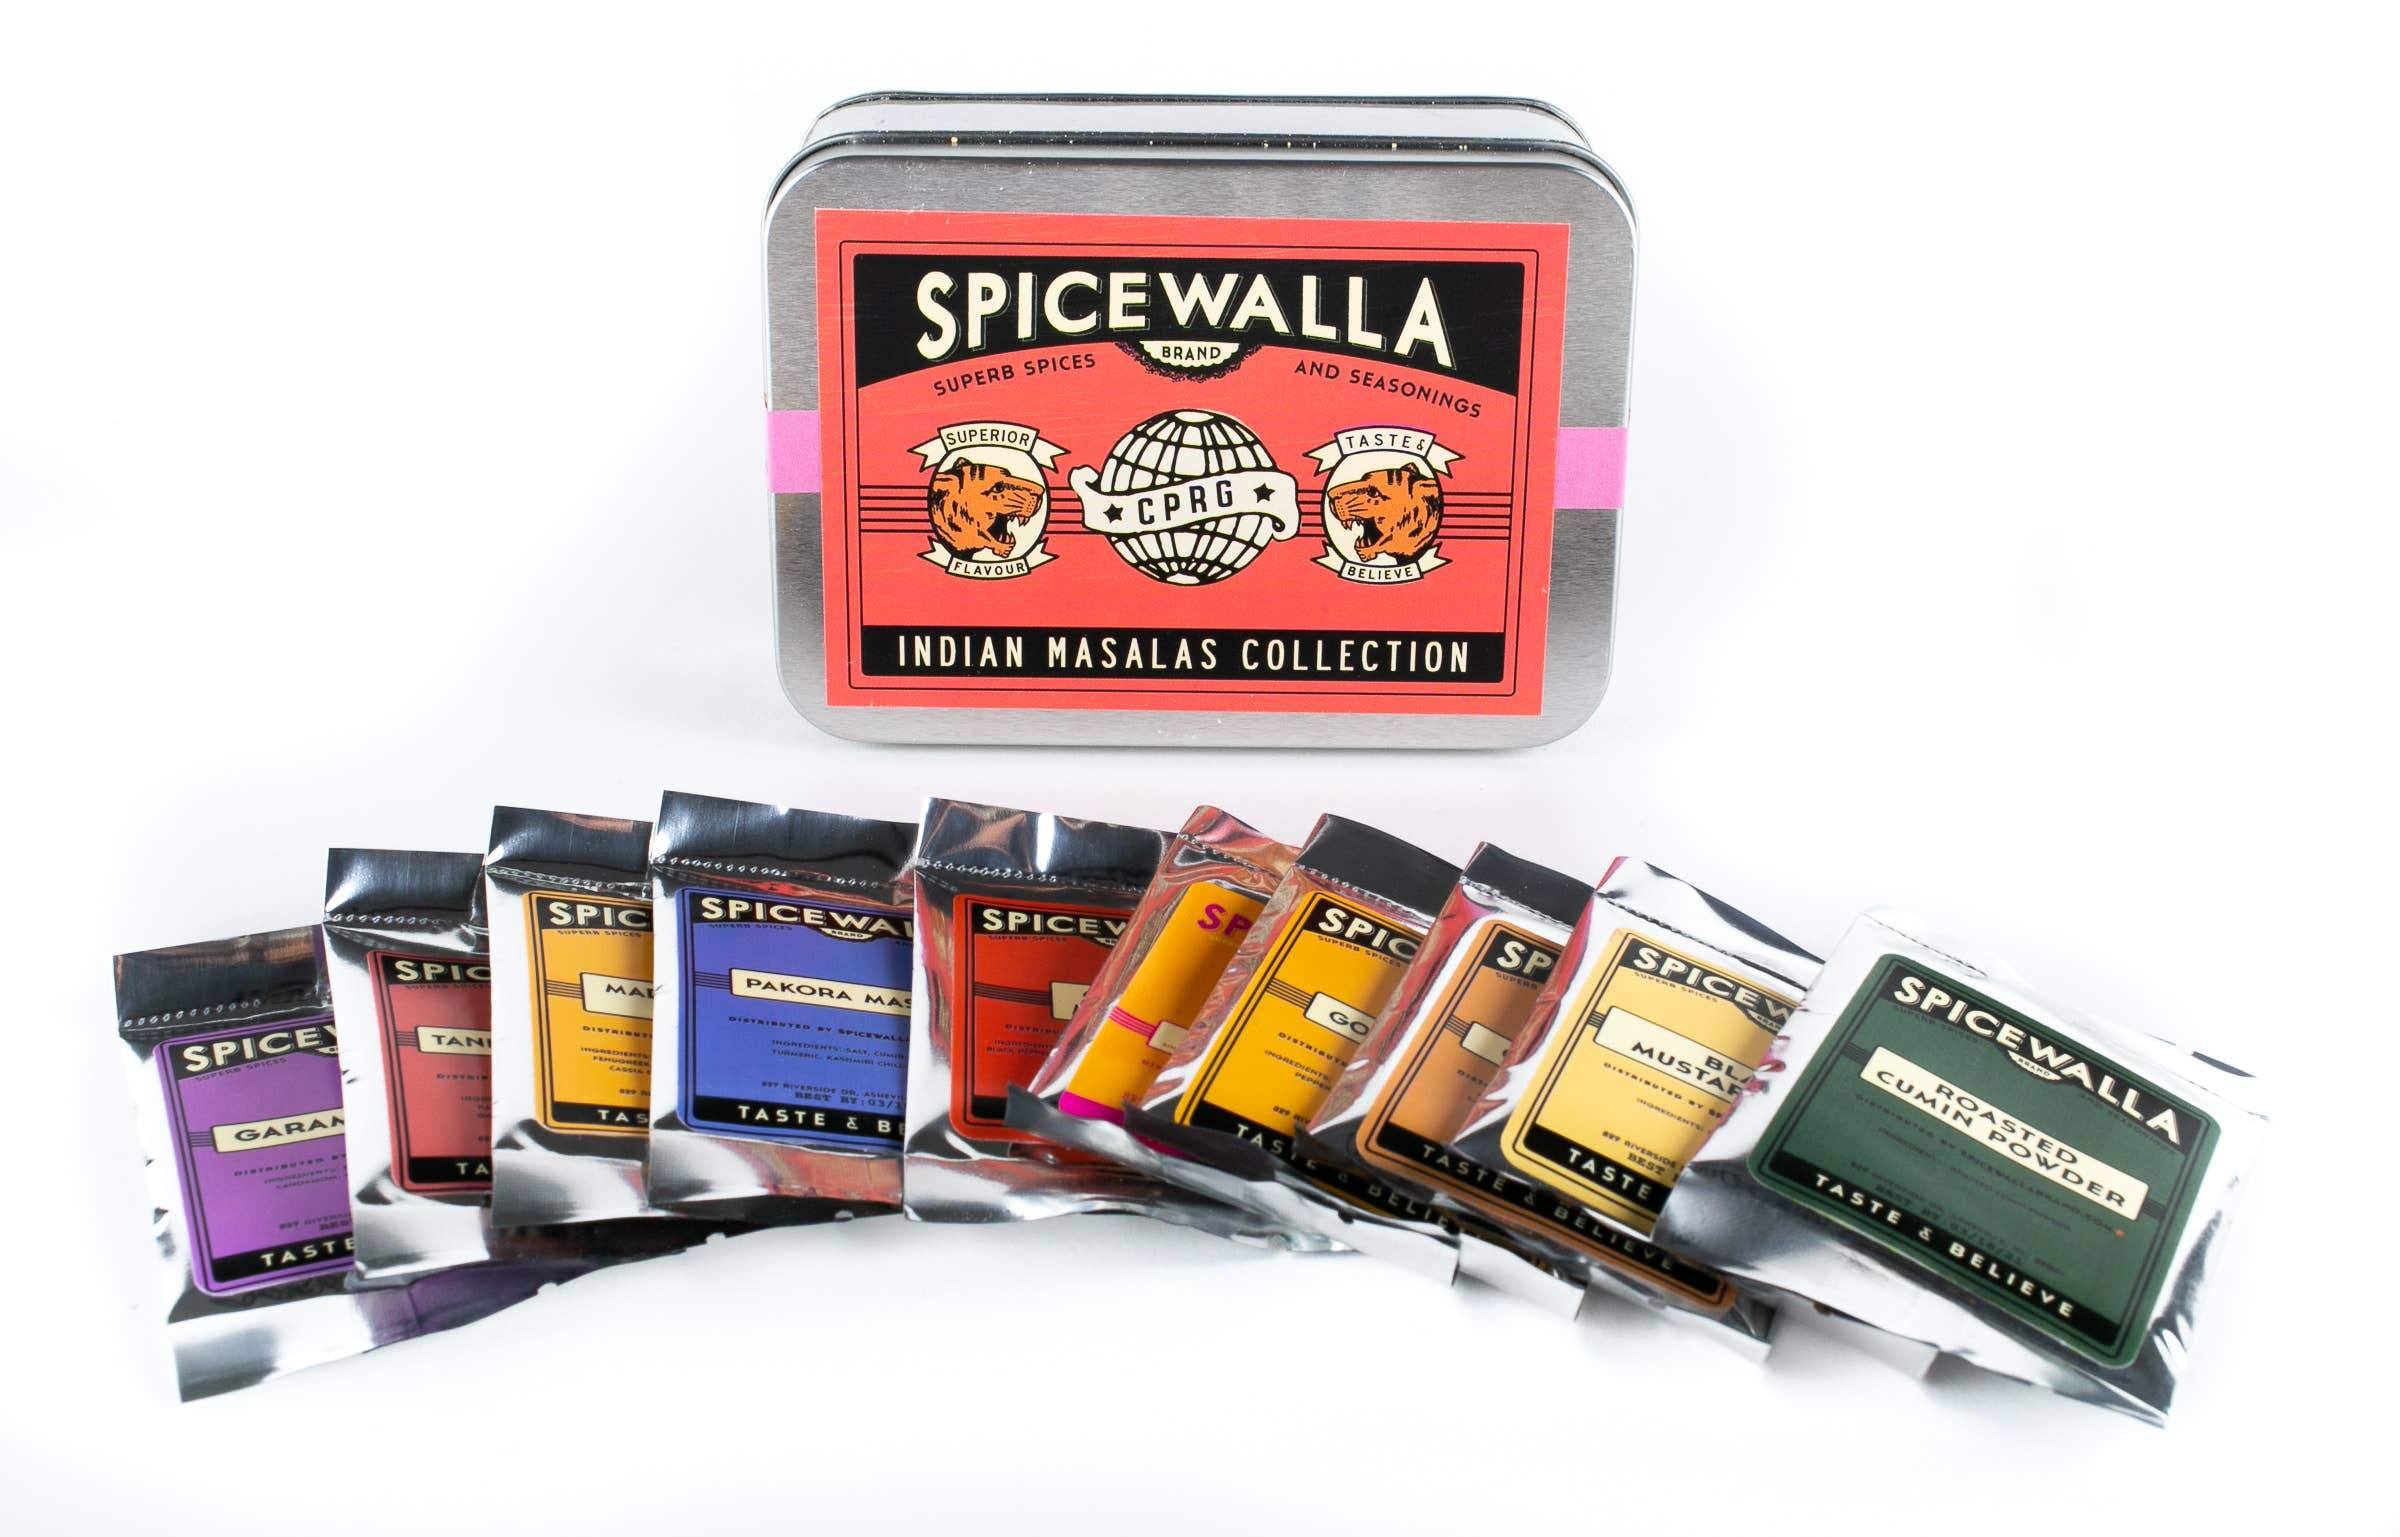 Tasting Collection - Indian Masalas